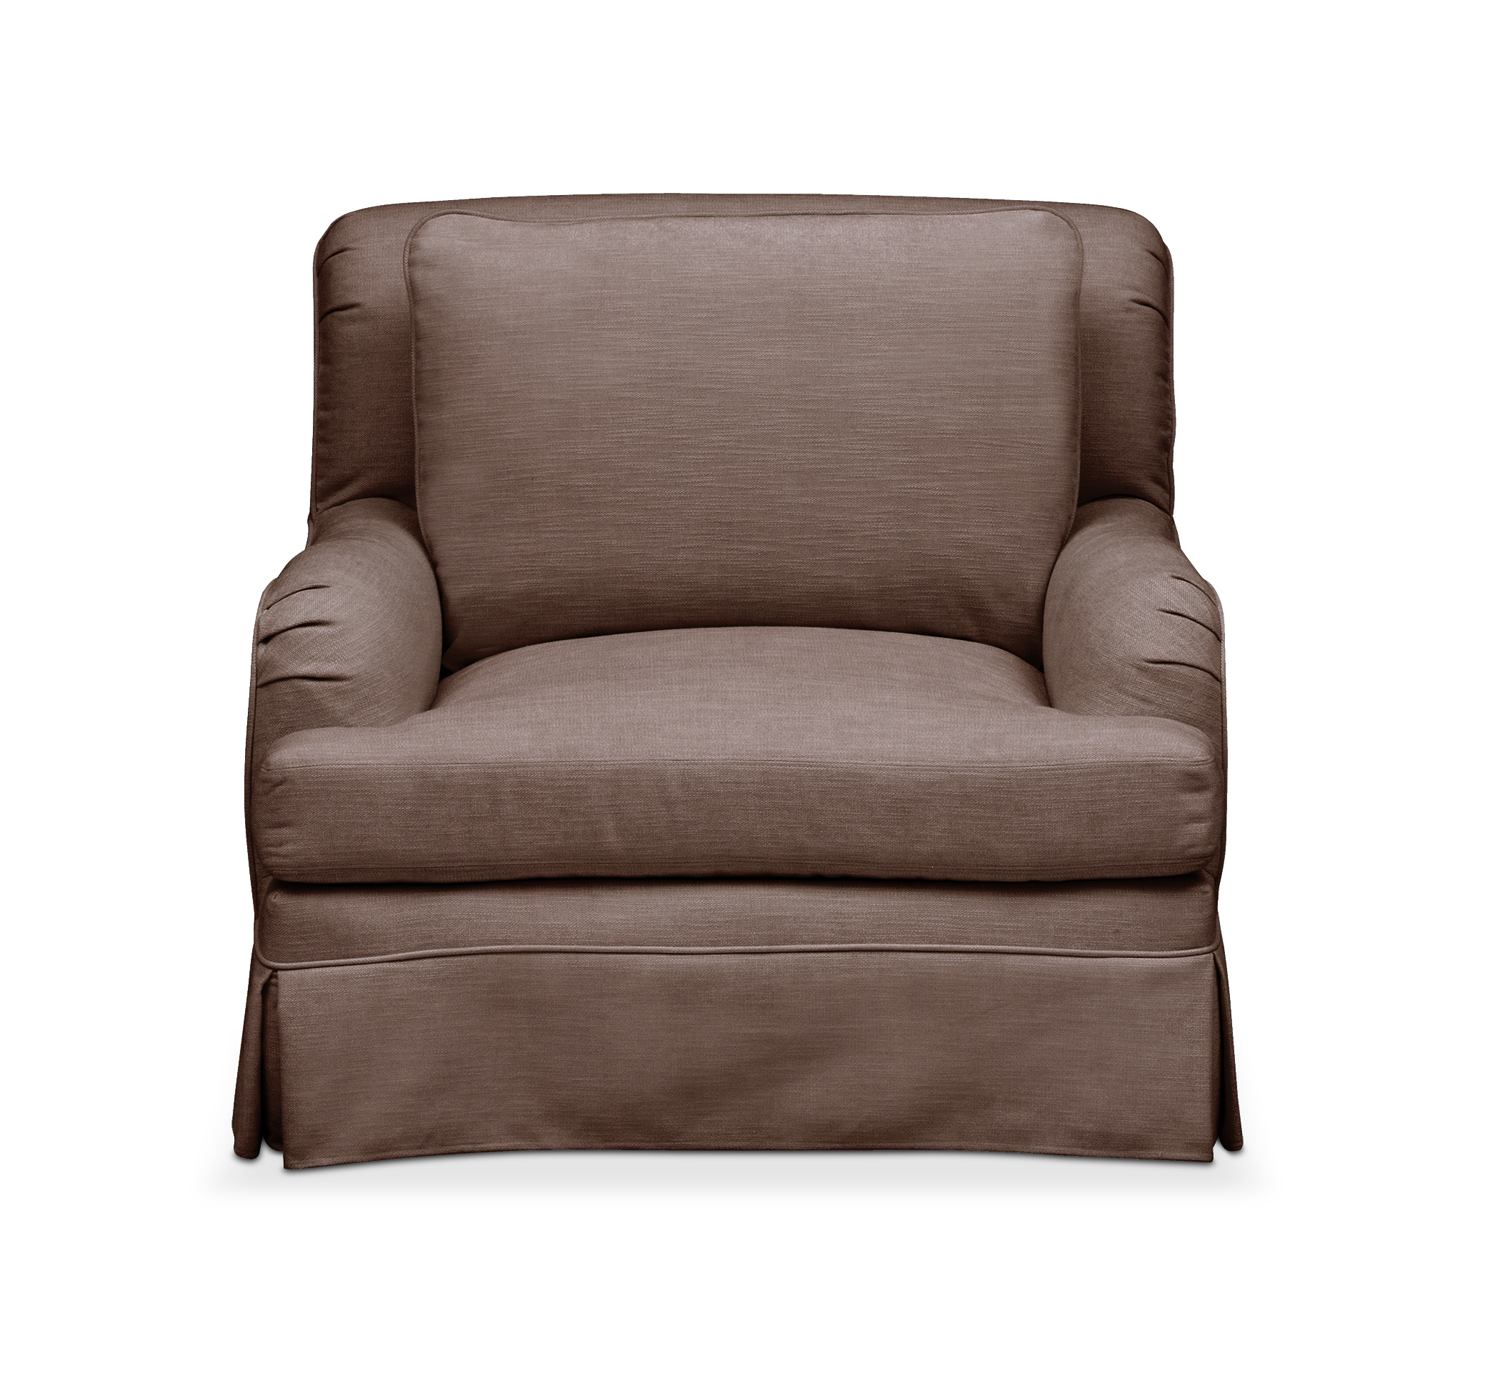 Living Room Furniture - Campbell Chair